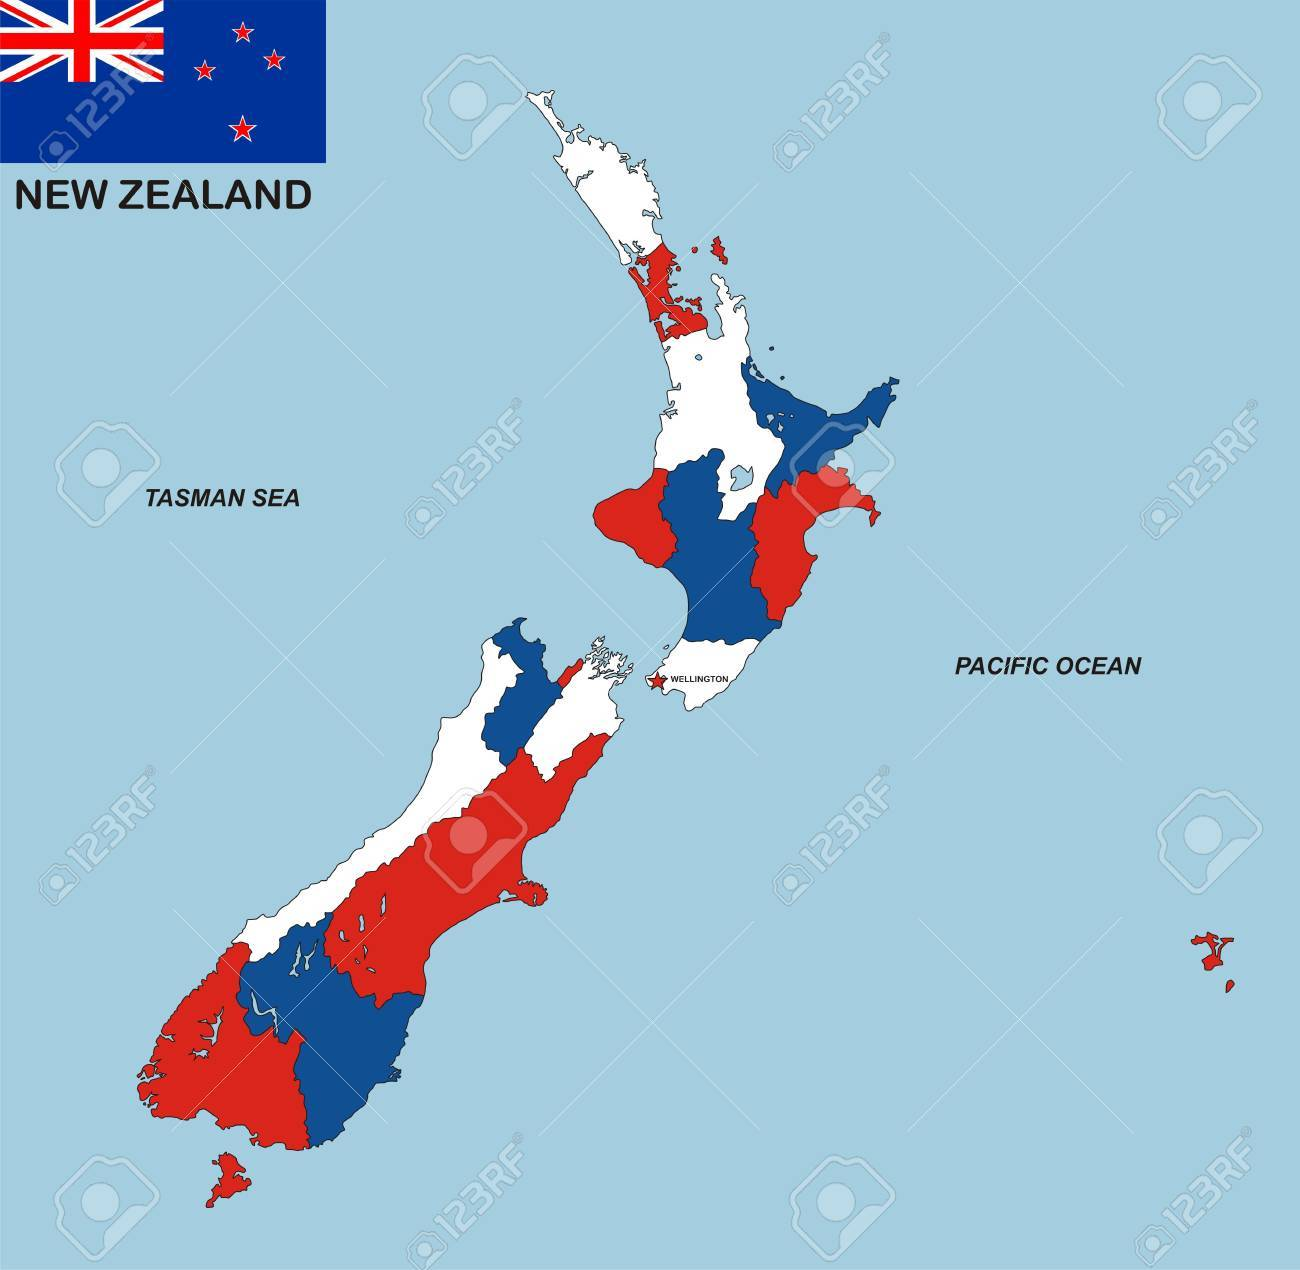 Political Map Of New Zealand.Very Big Size Political Map Of New Zealand With Flag Stock Photo